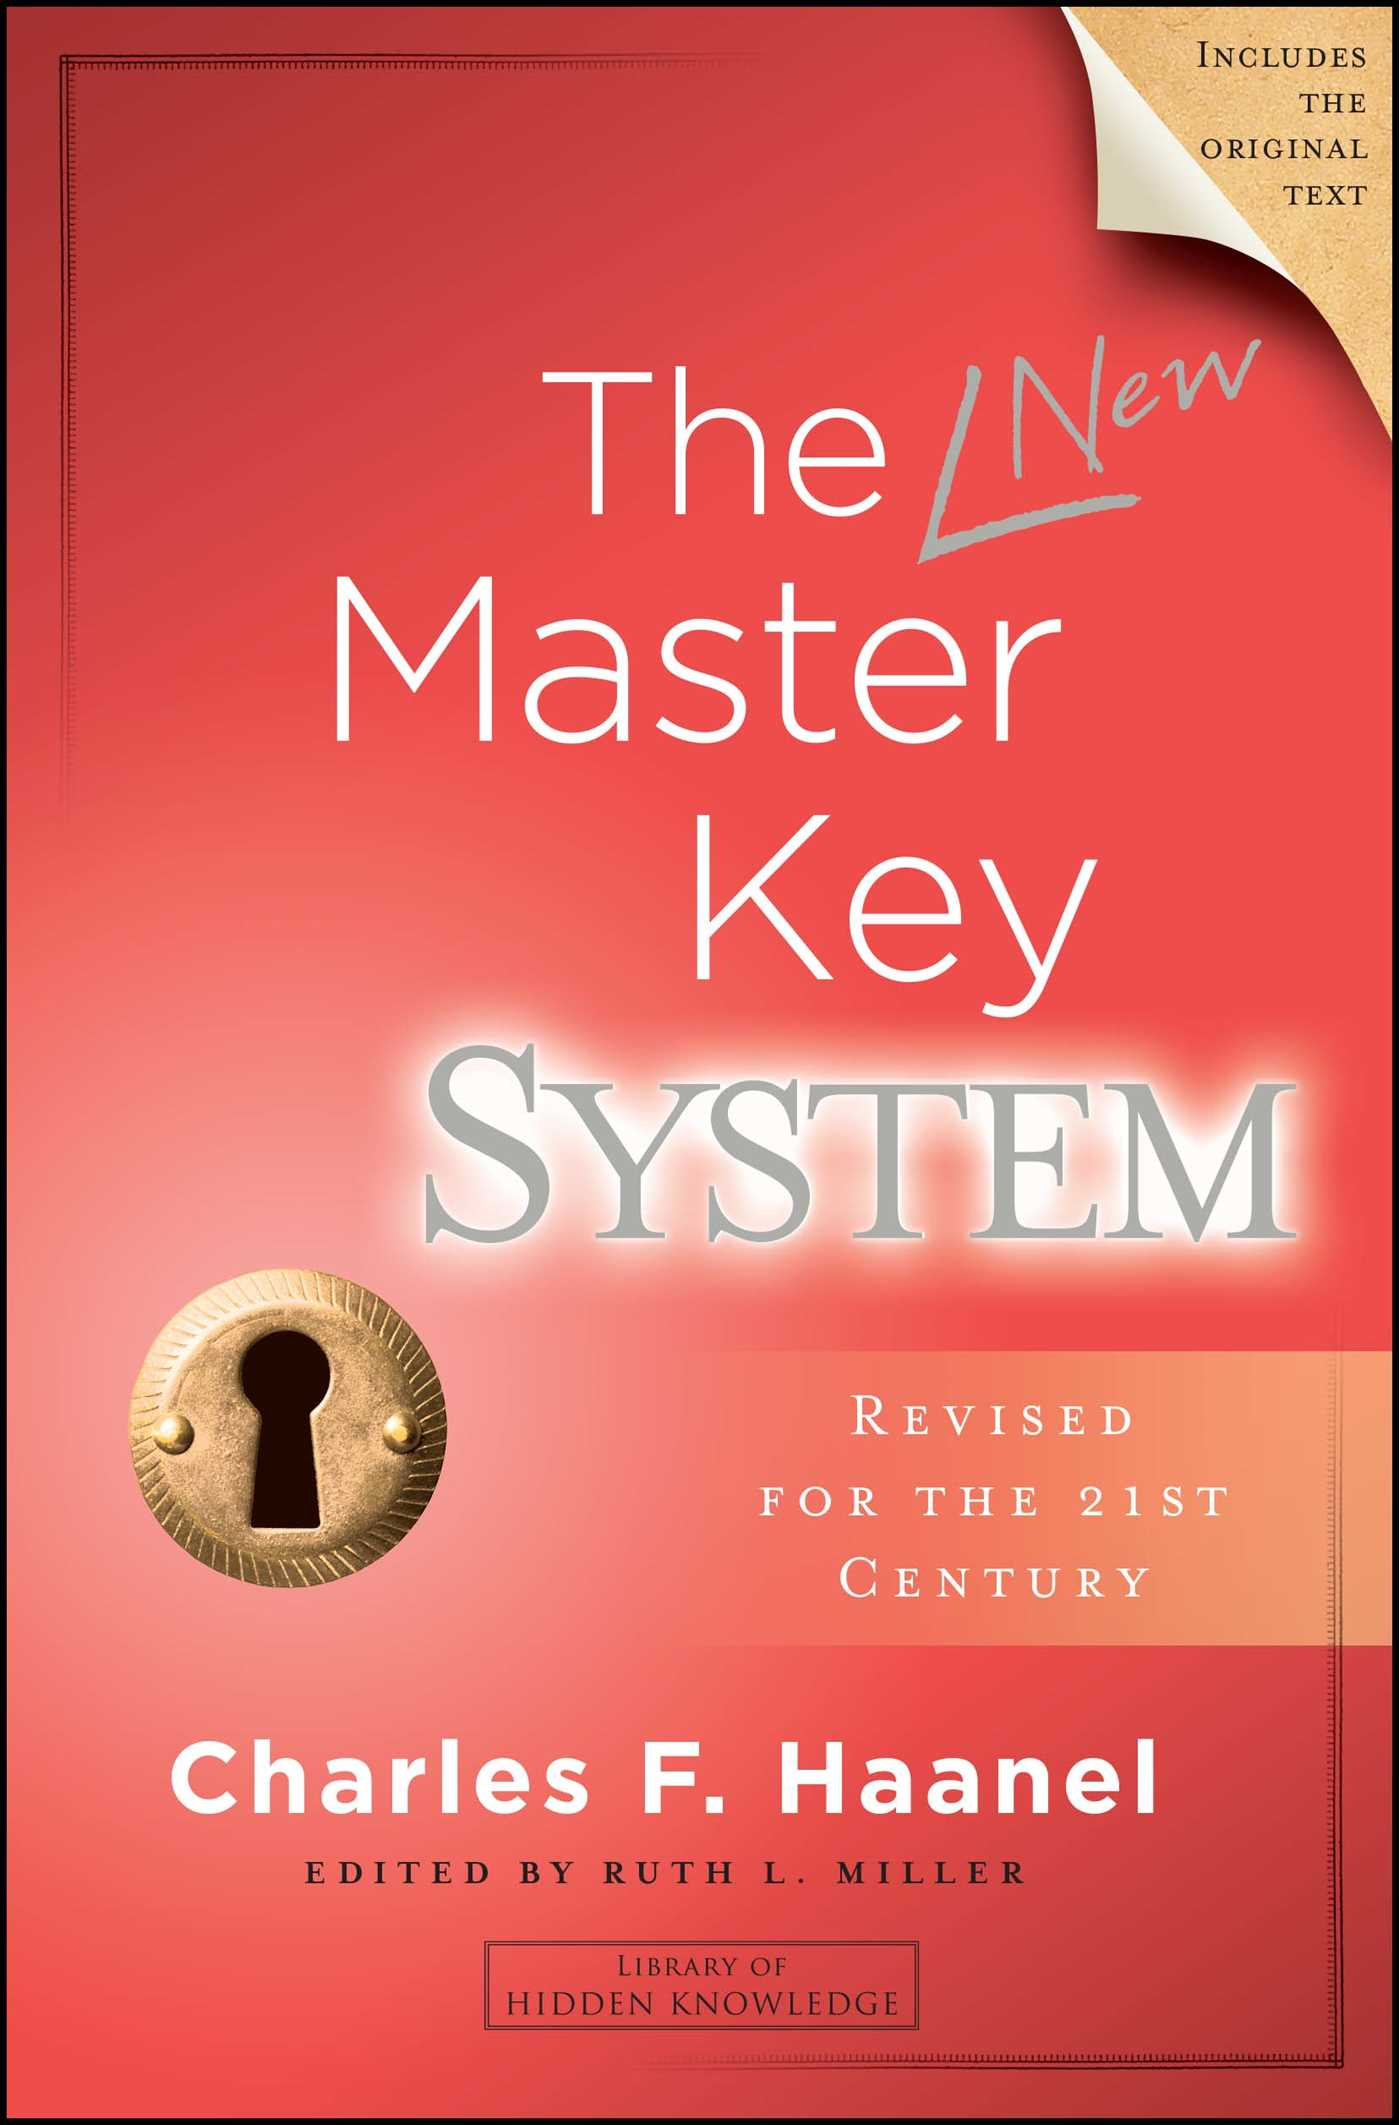 The new master key system 9781416587668 hr